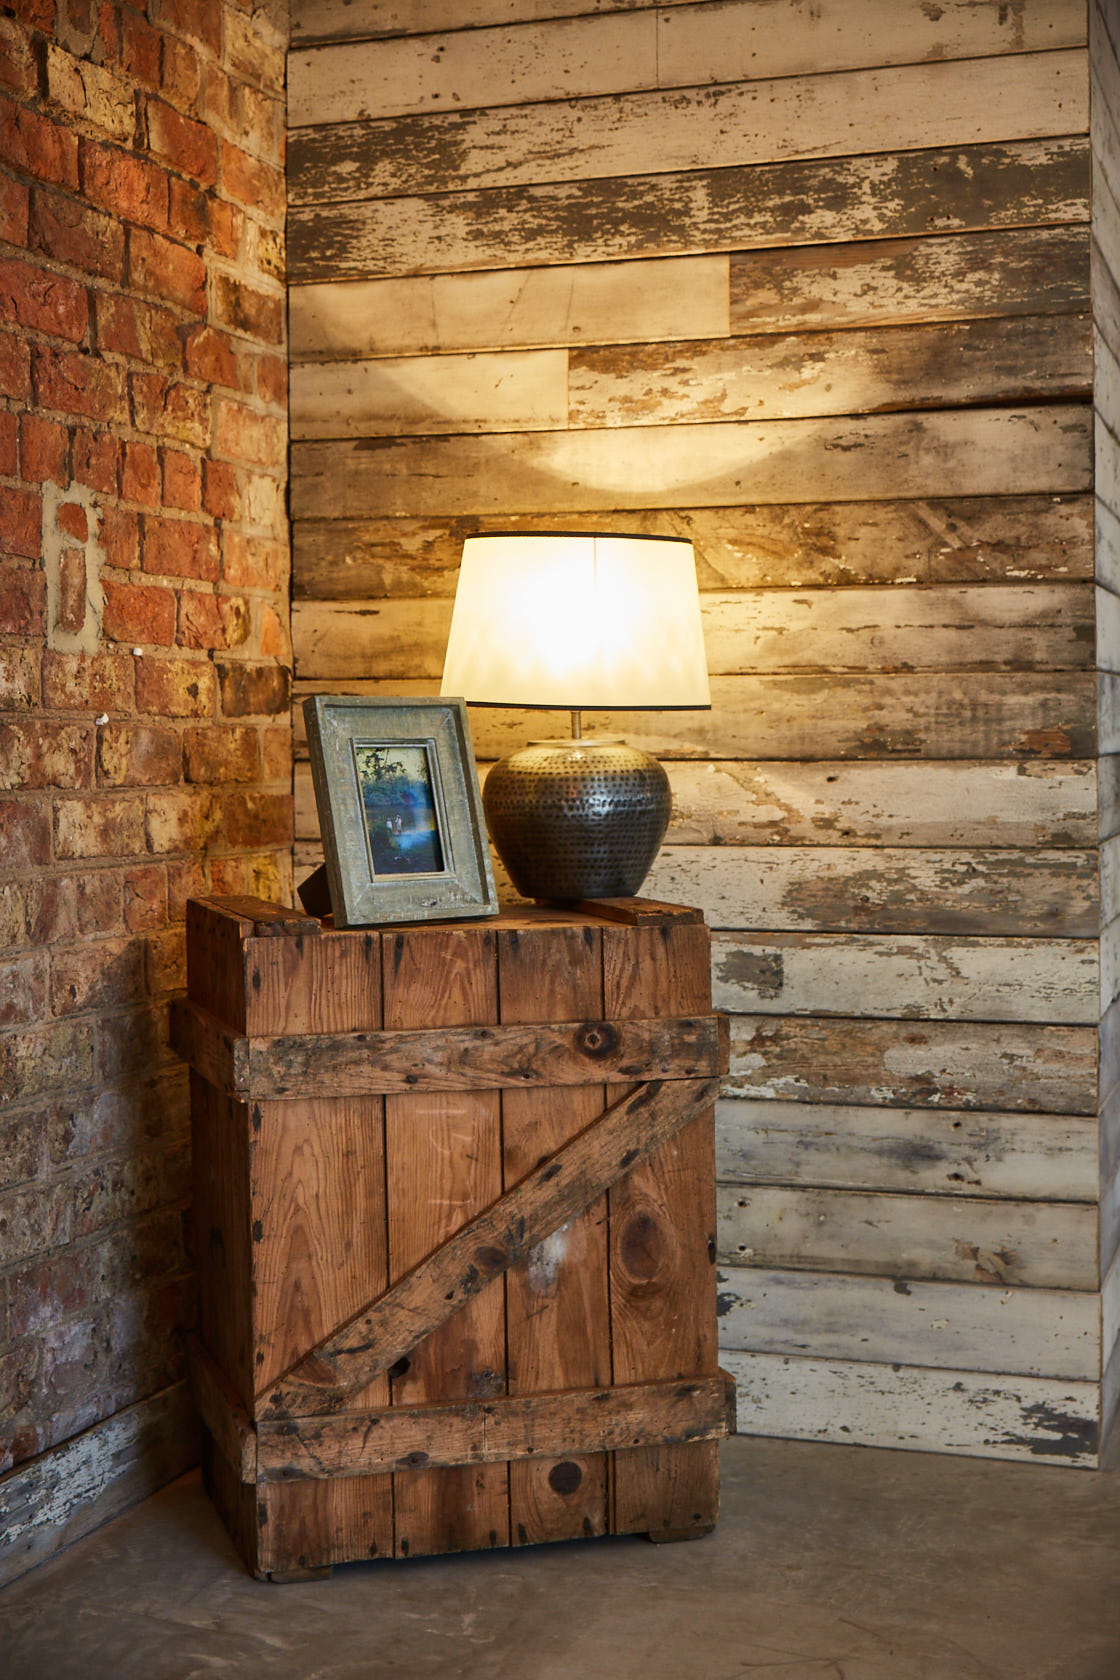 Reclaimed fruit crate with lamp